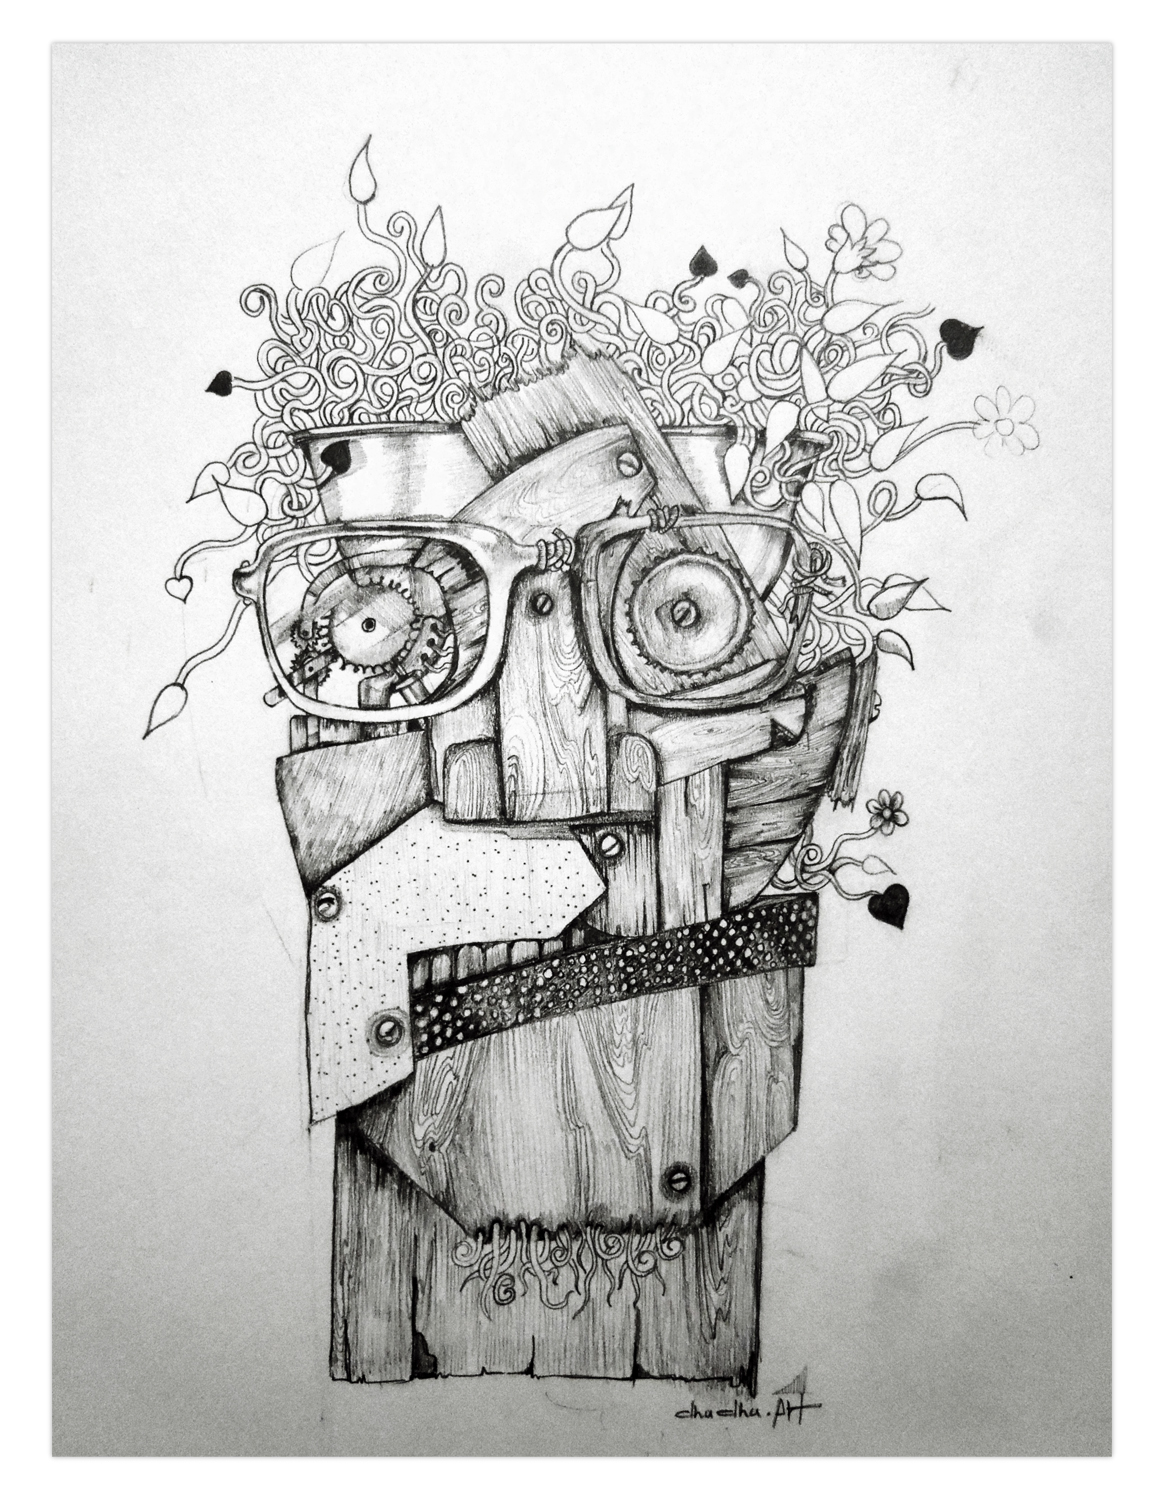 Abstract pencil drawing on behance